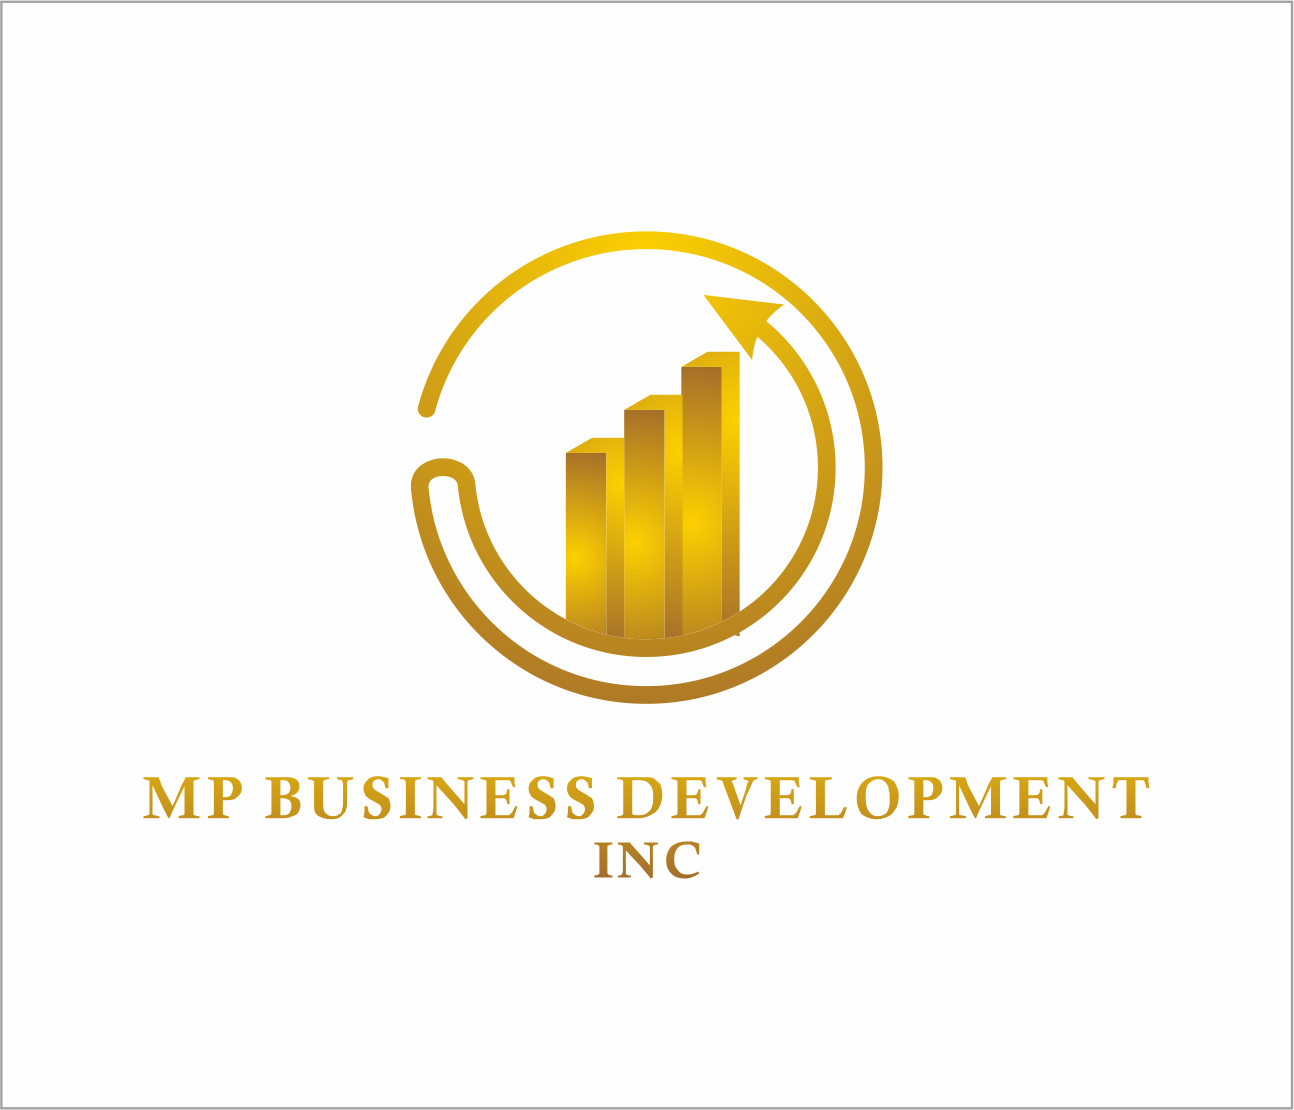 Logo Design by Armada Jamaluddin - Entry No. 237 in the Logo Design Contest MP Business Development Inc. Logo Design.